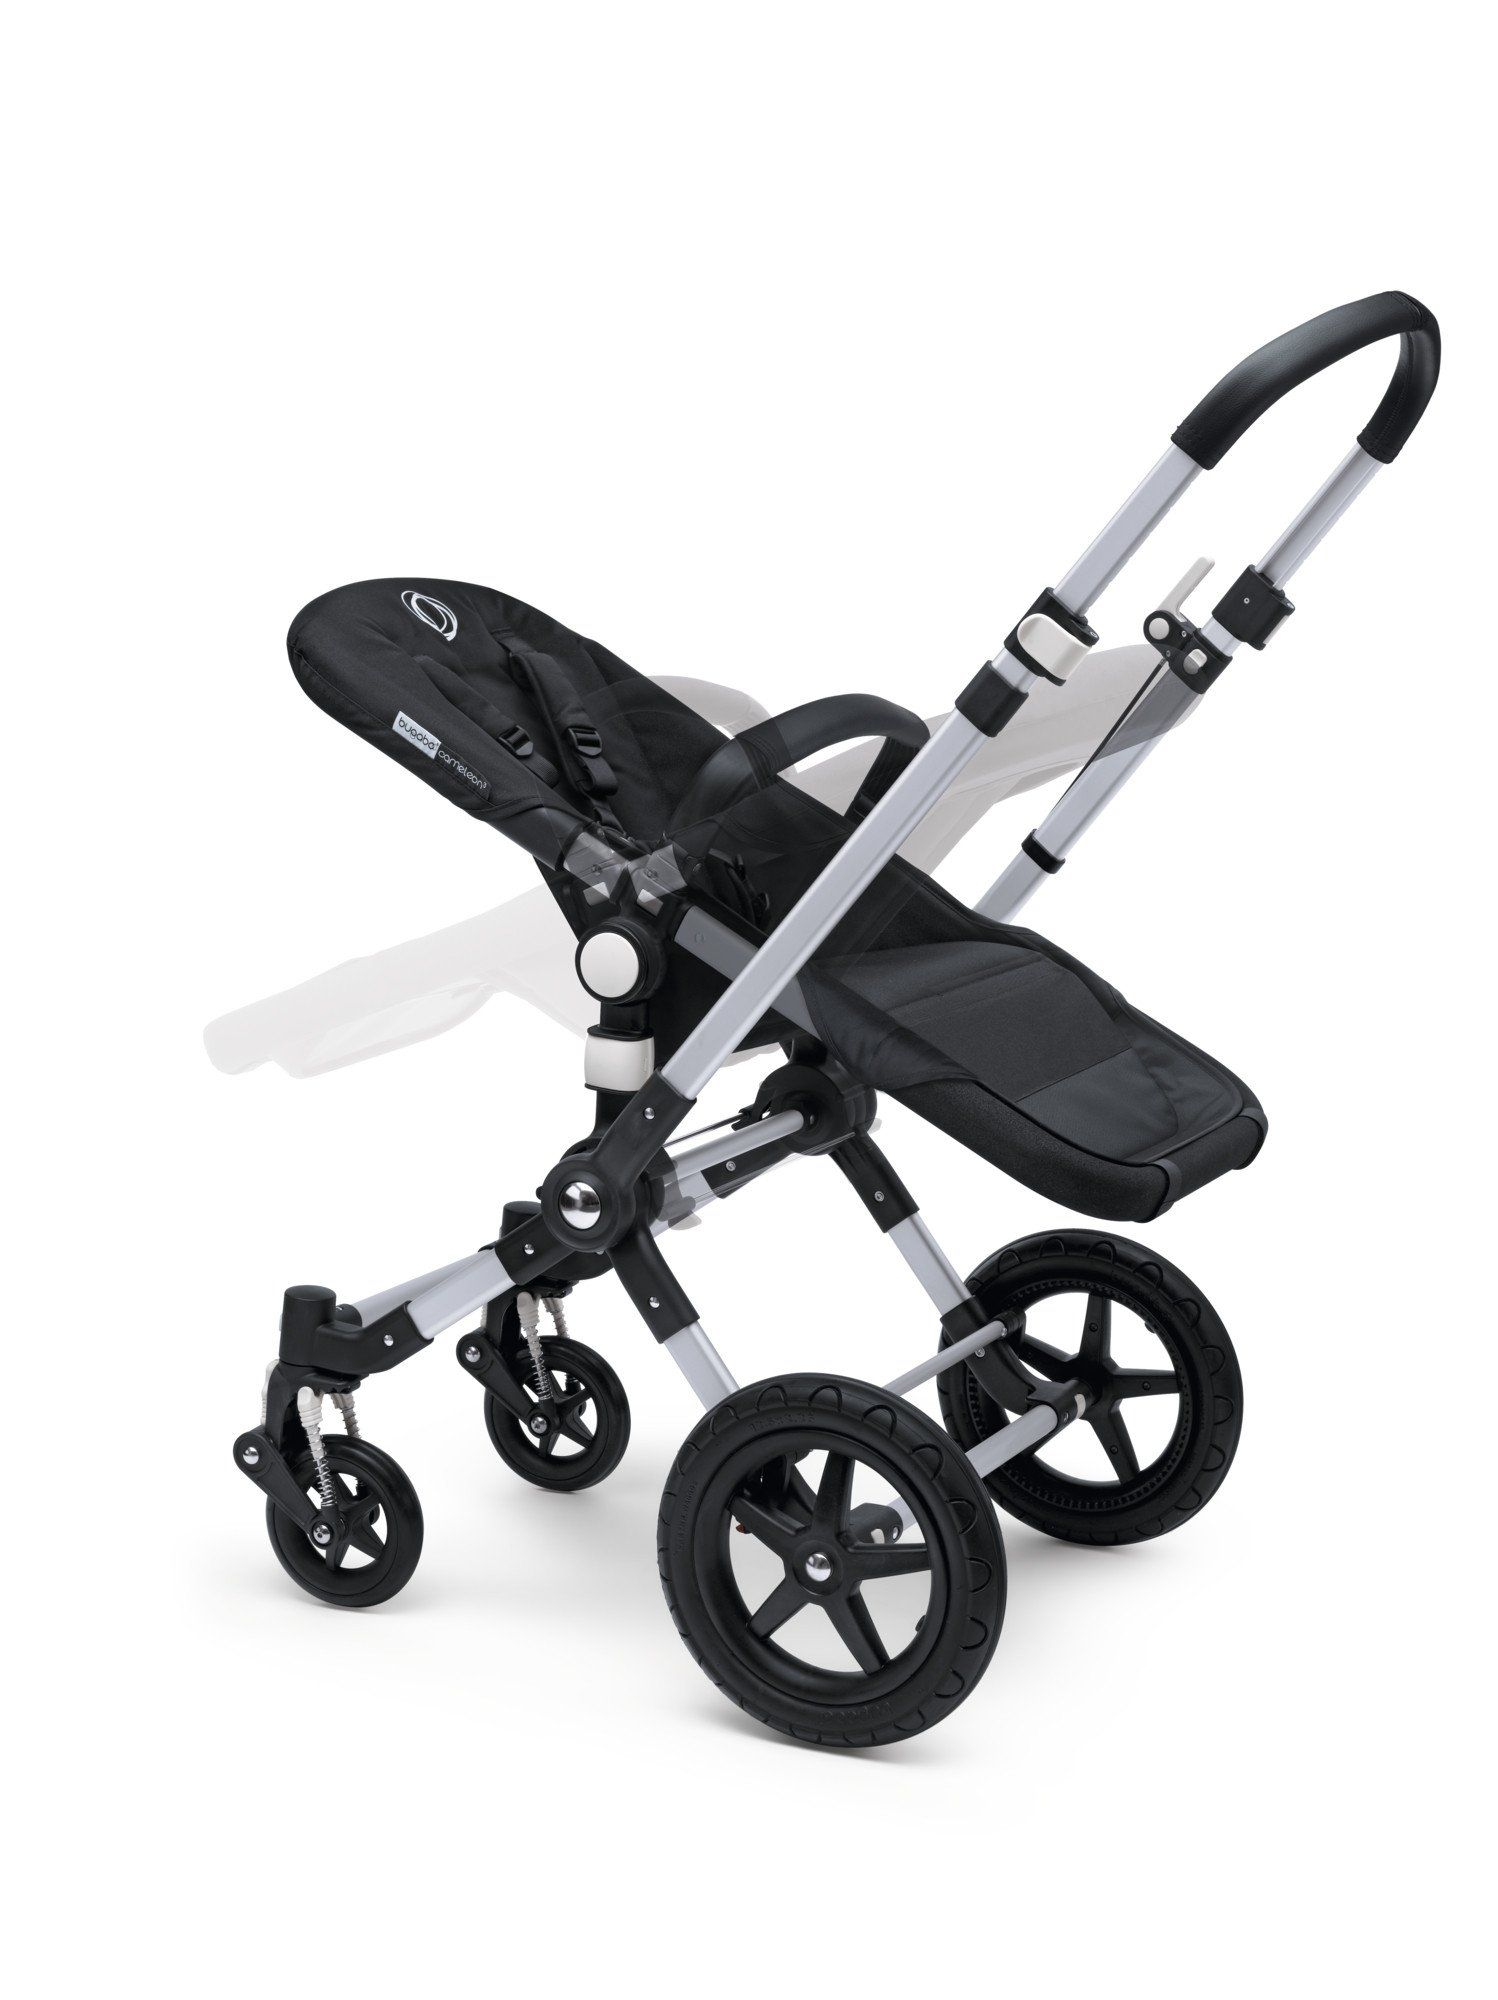 Bugaboo cameleon 3 base with chassis Bugaboo cameleon